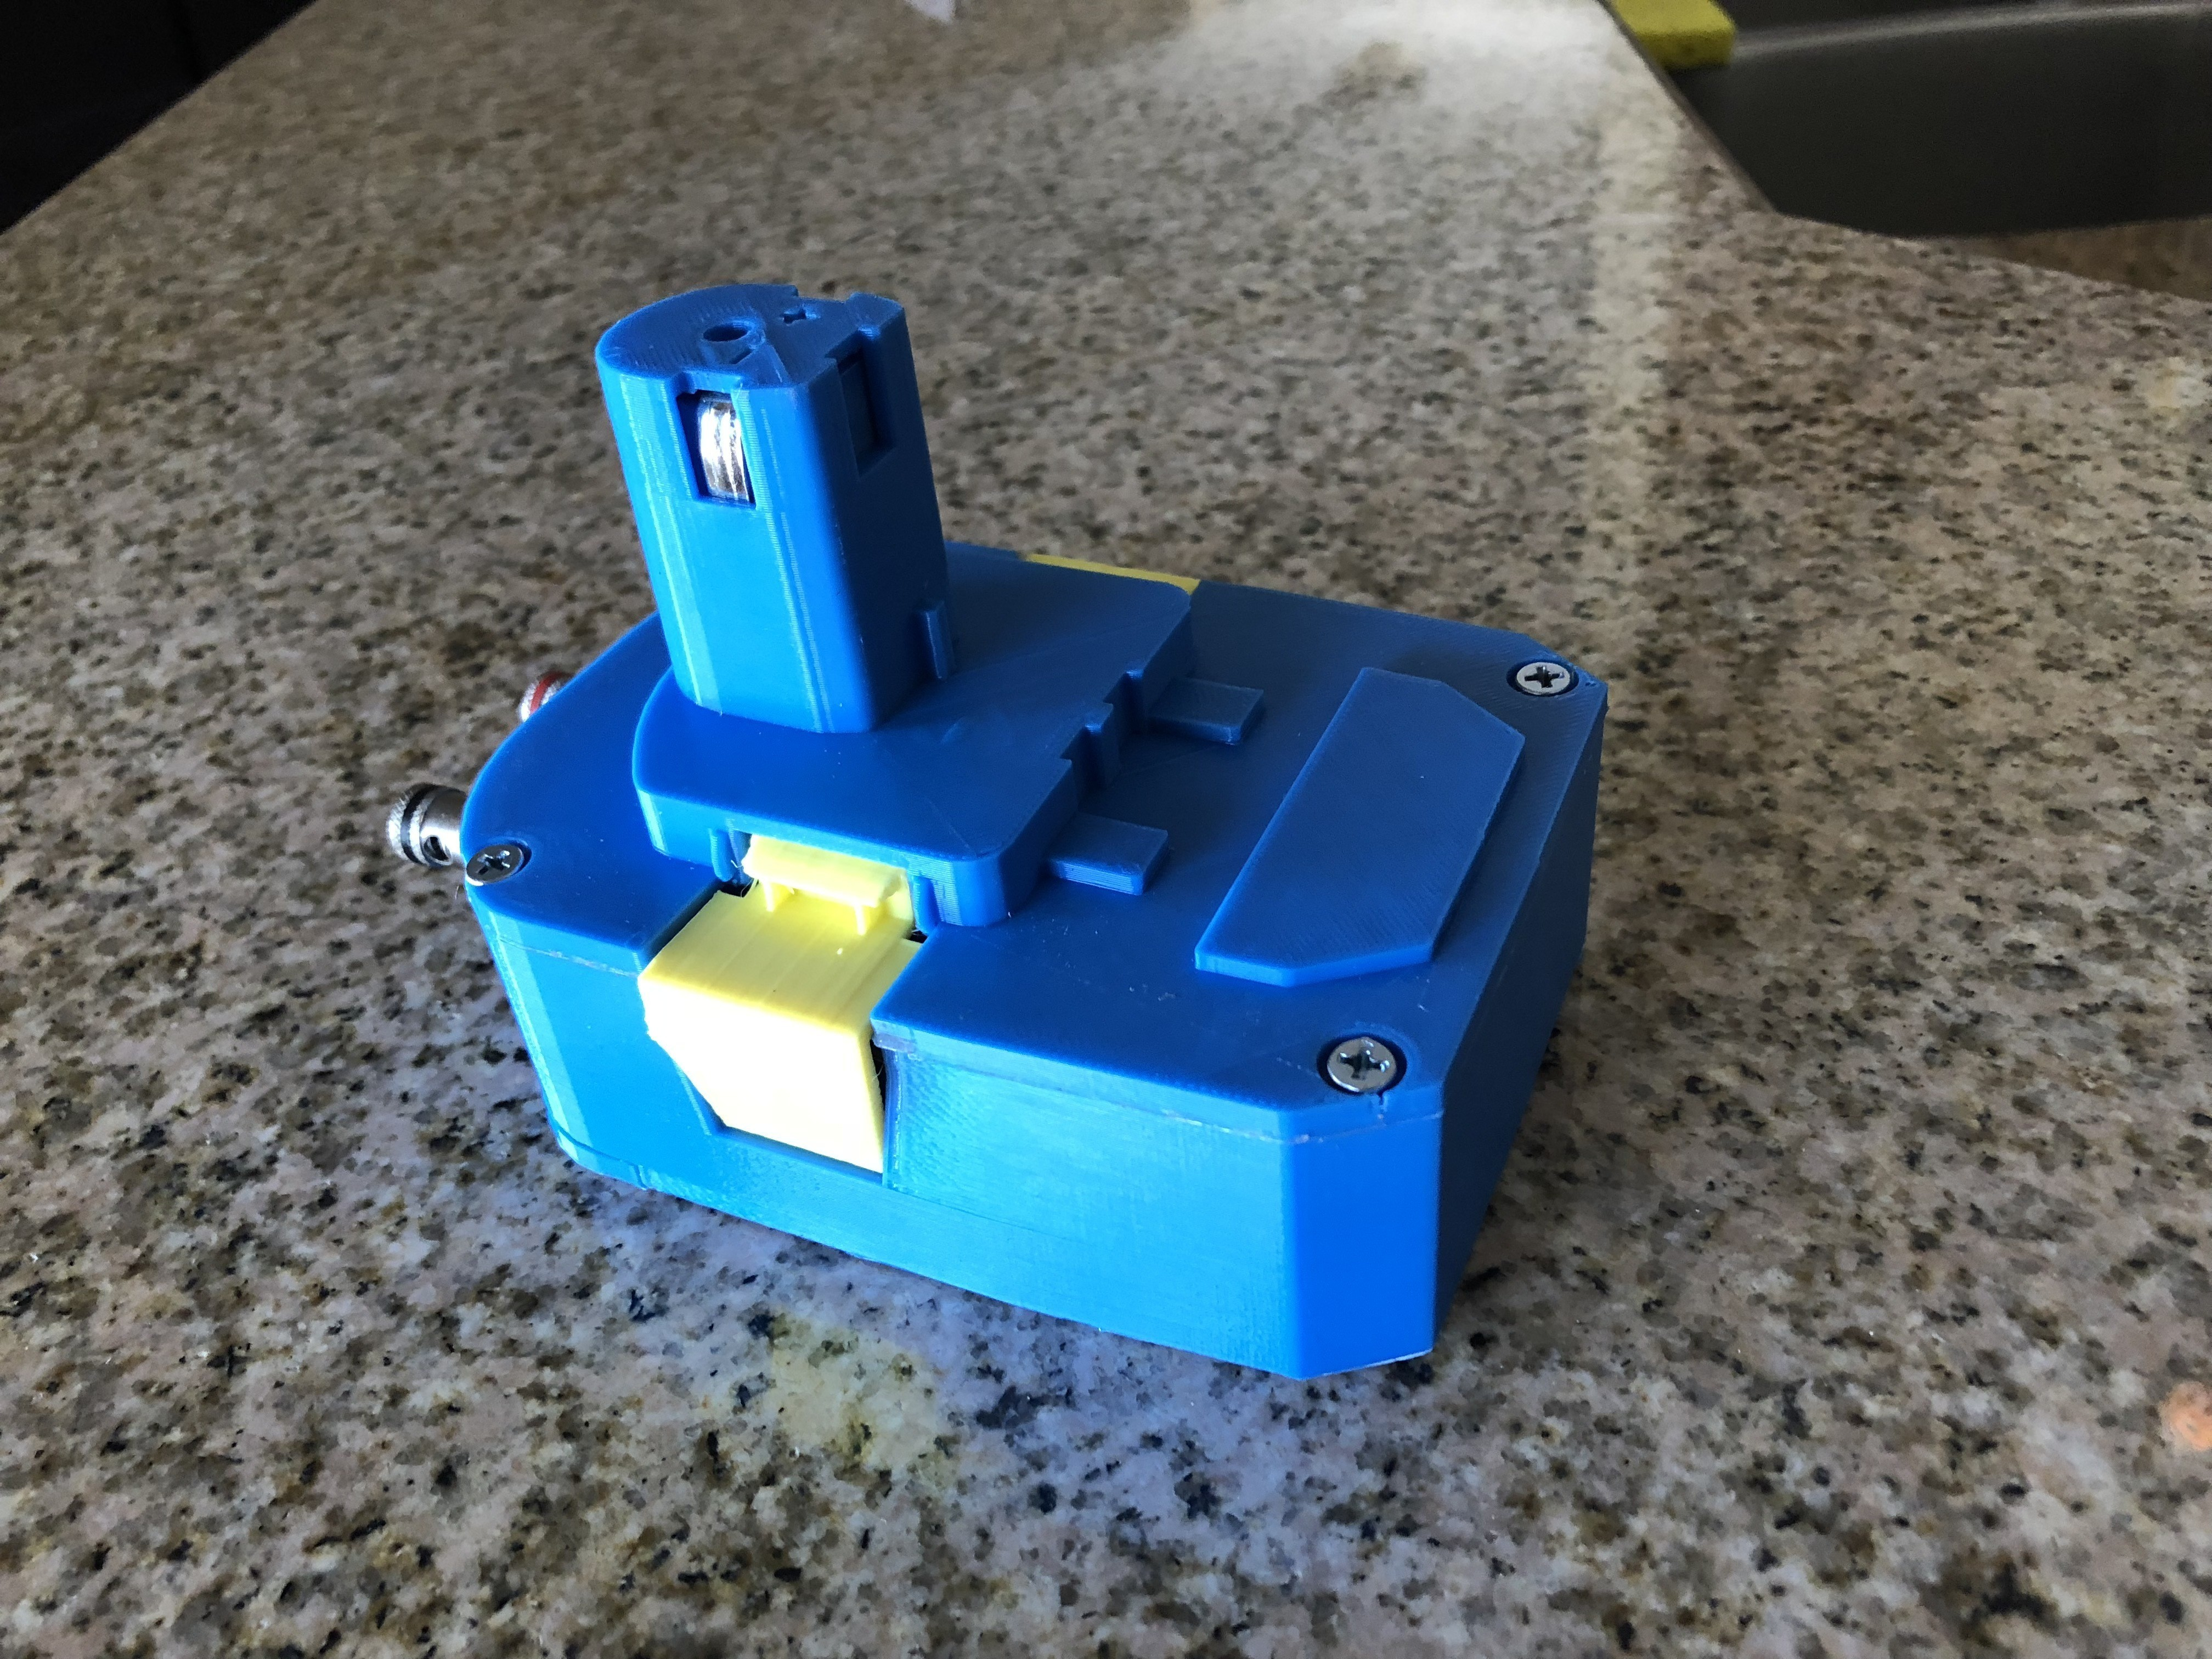 IMG_1694.jpg Download free STL file Ryobi Battery Pack to AC Adapter • 3D print object, MeesterEduard